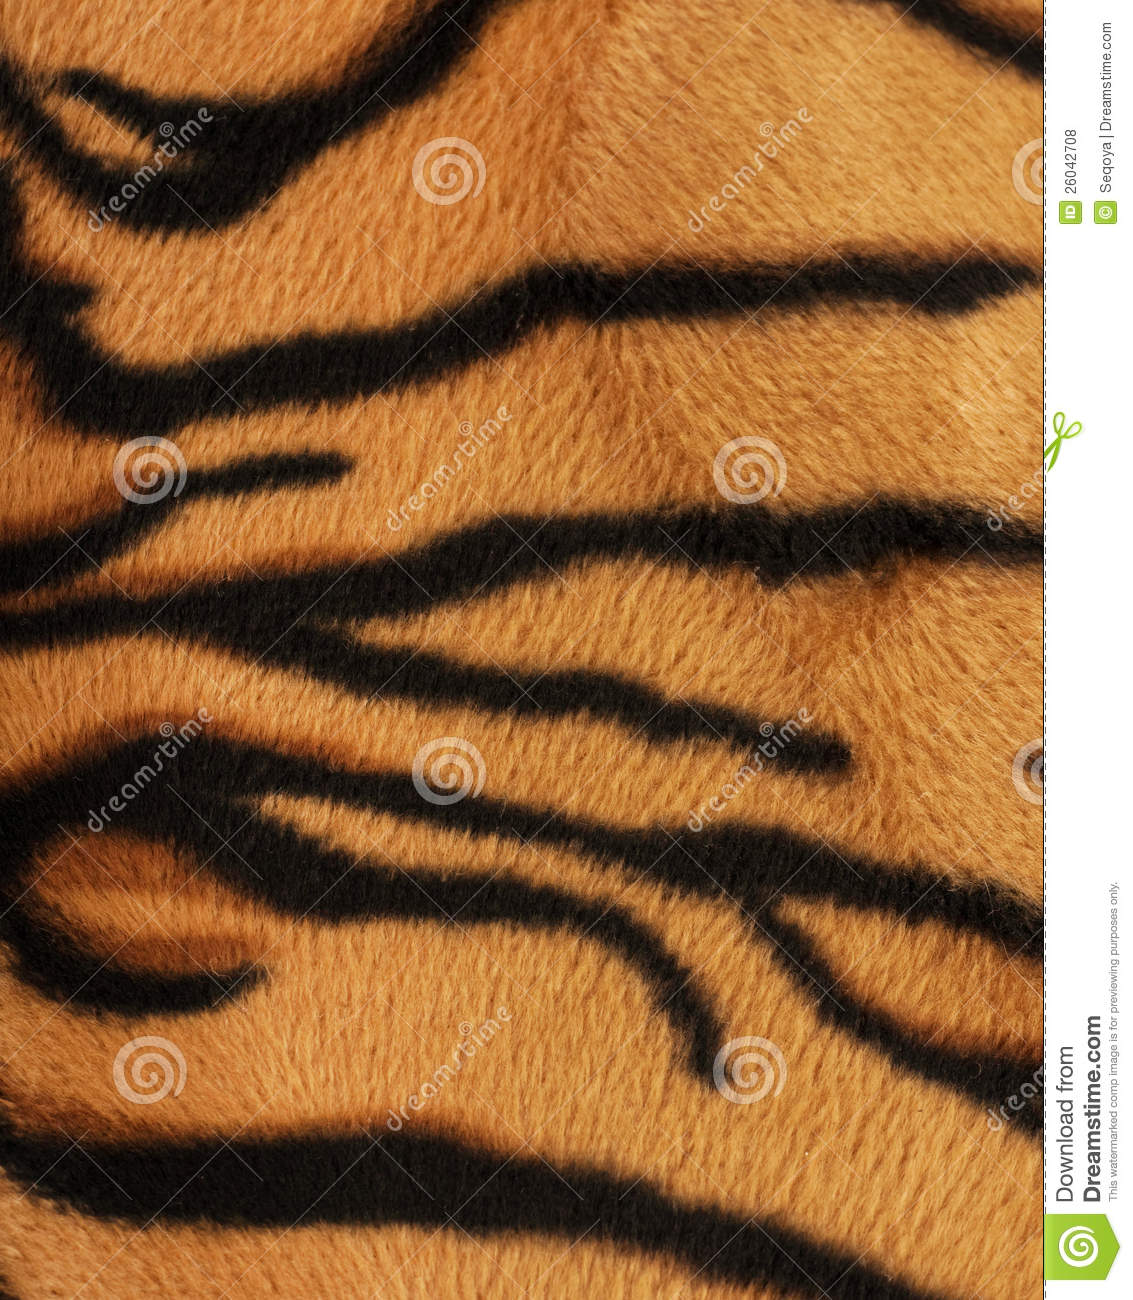 Structure of a skin of a tiger, striped